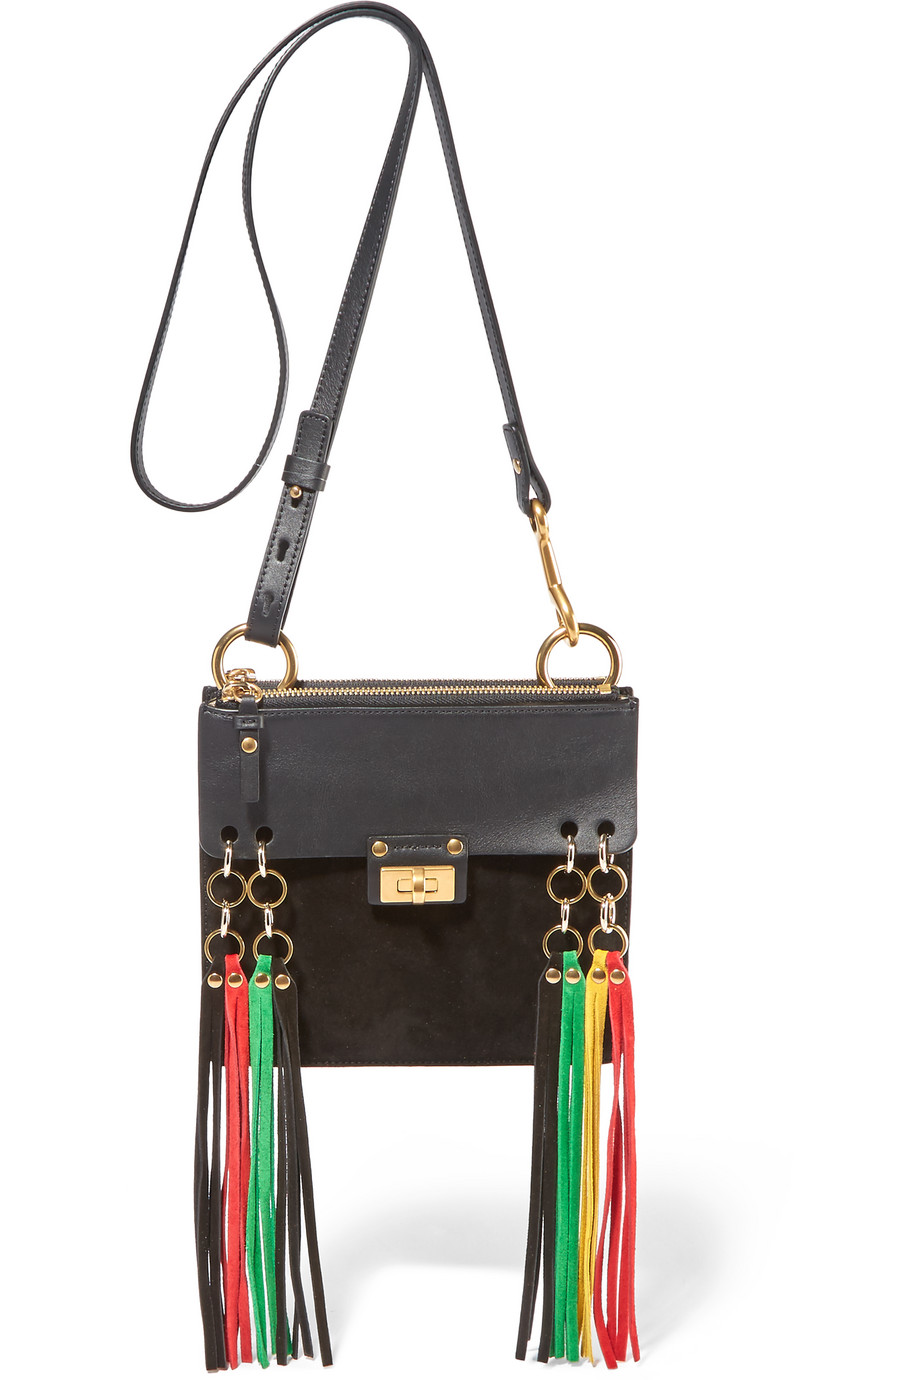 Chloé Jane Small Leather and Suede Shoulder Bag, Black, Women's